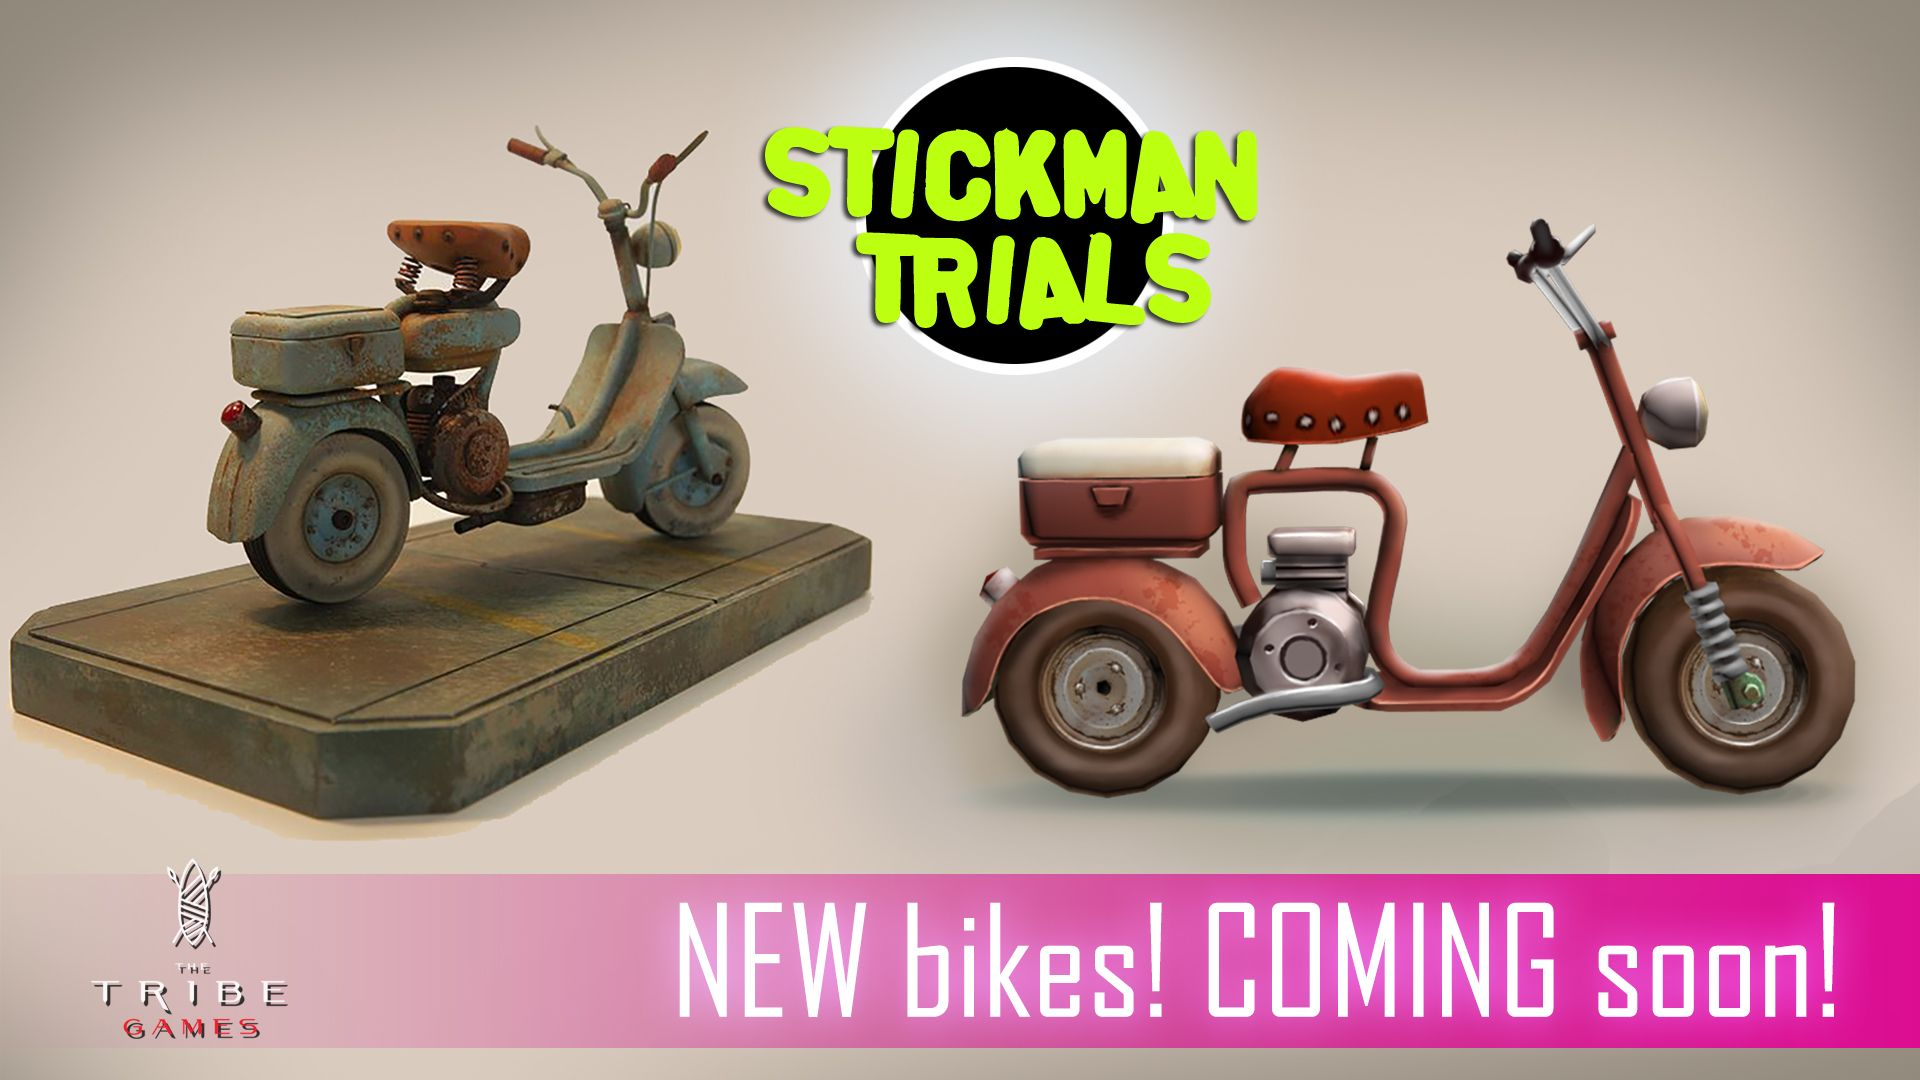 You can download #StickmanTrials for #Android here: https://play.google.com/store/apps/details?id=com.tribegames.stickmantrials&hl=en  #stunats #flip #backflip #bike #race #racing #cycling #dh #downhill #mtb #jumps #mountains #supreme #stunt #crash #tricks #ride #riding #bmx #trail #trial #new #googleplay #free #update #app #apps